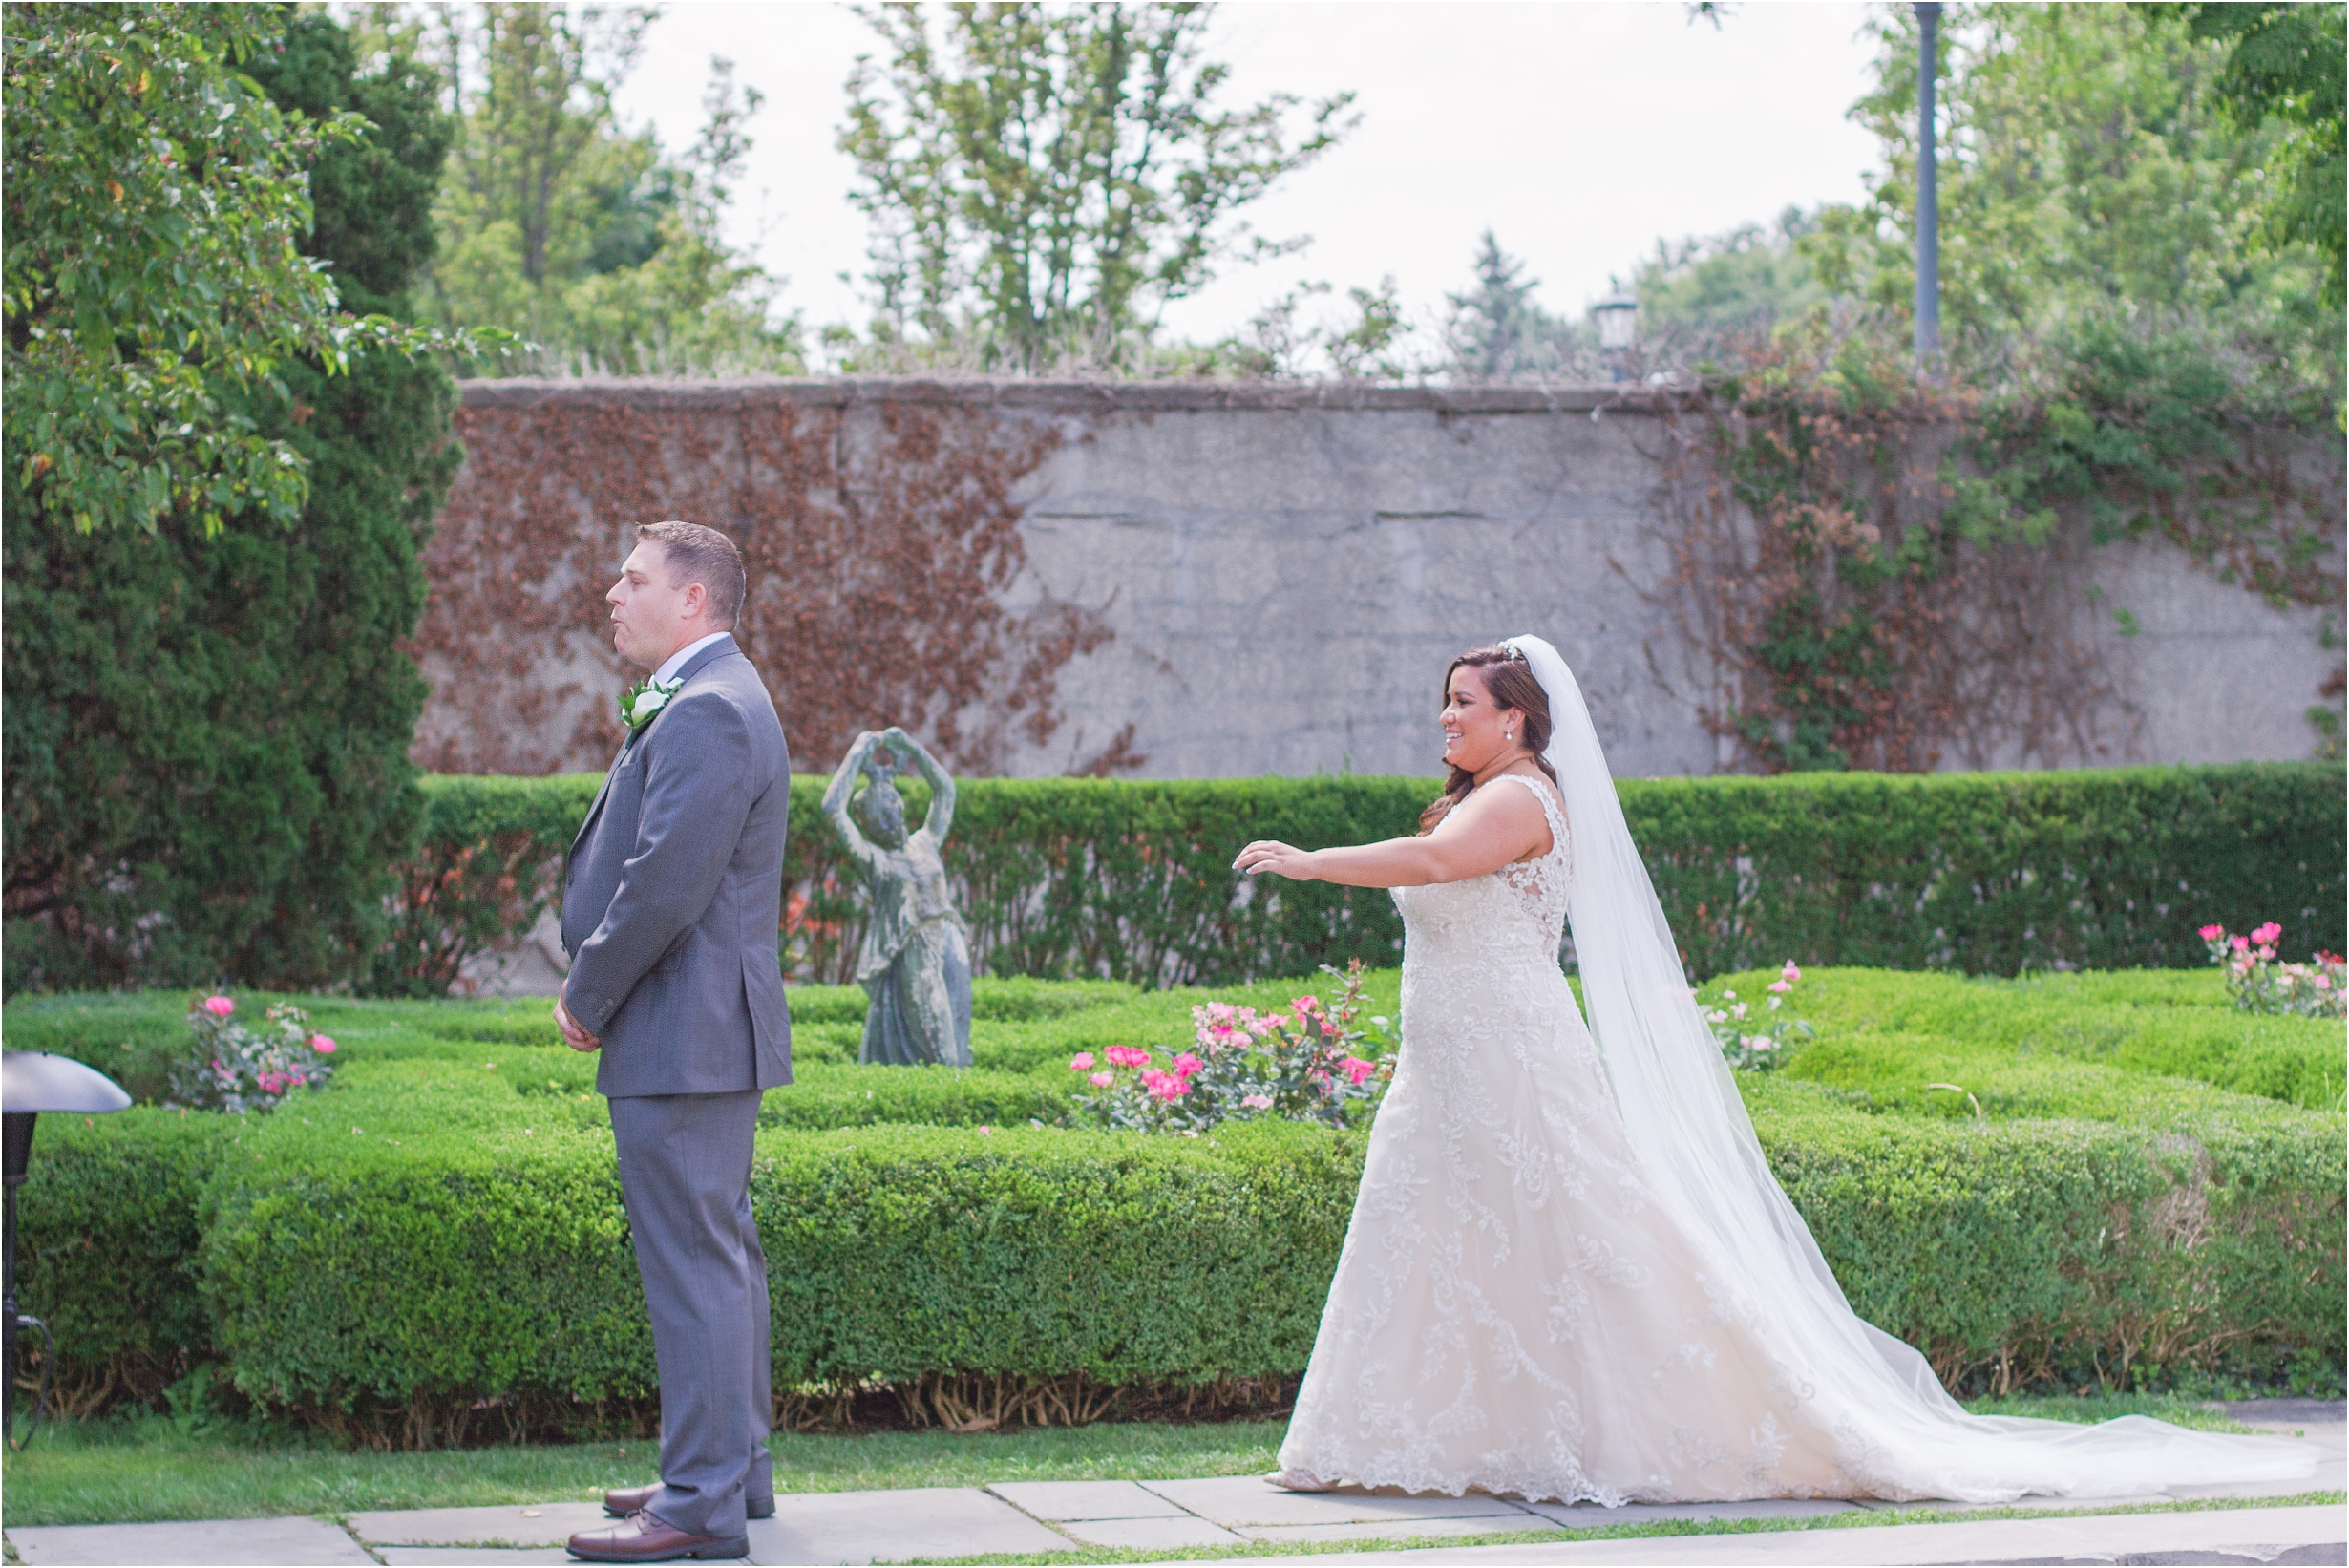 romantic-timeless-candid-wedding-photos-at-the-war-memorial-in-grosse-pointe-mi-by-courtney-carolyn-photography_0003.jpg